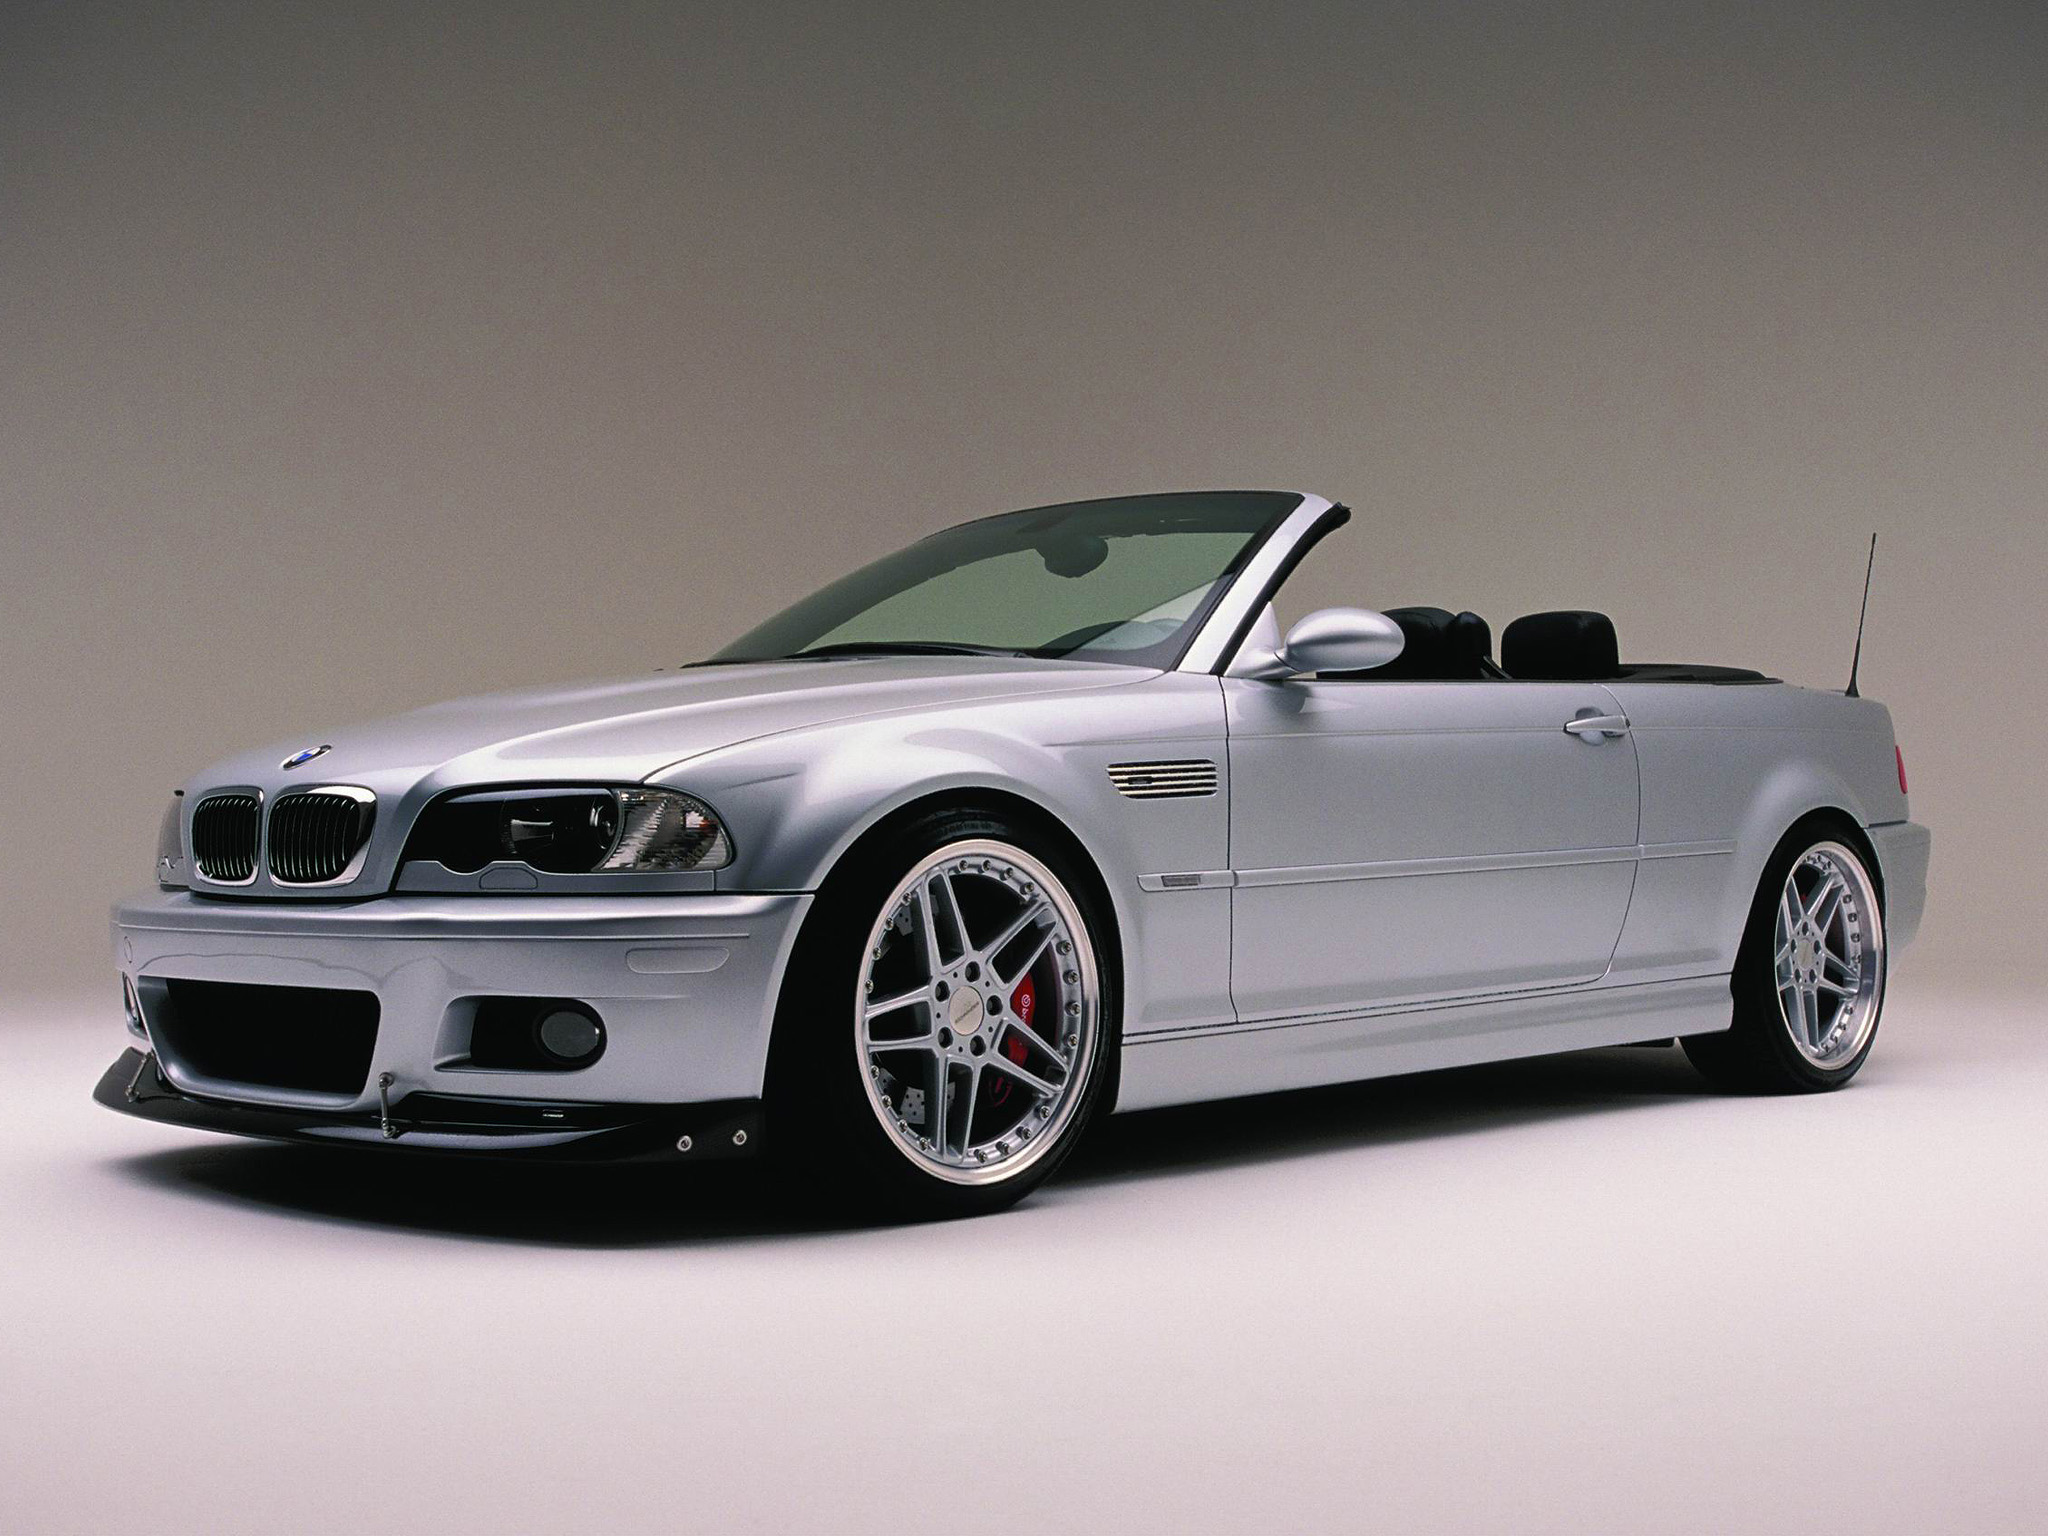 2002 ac schnitzer acs3 3series e46 compact gallery hd cars wallpaper 2003 ac schnitzer acs3 3series e46 m3 sport image collections hd 2003 ac schnitzer acs3 3series vanachro Image collections